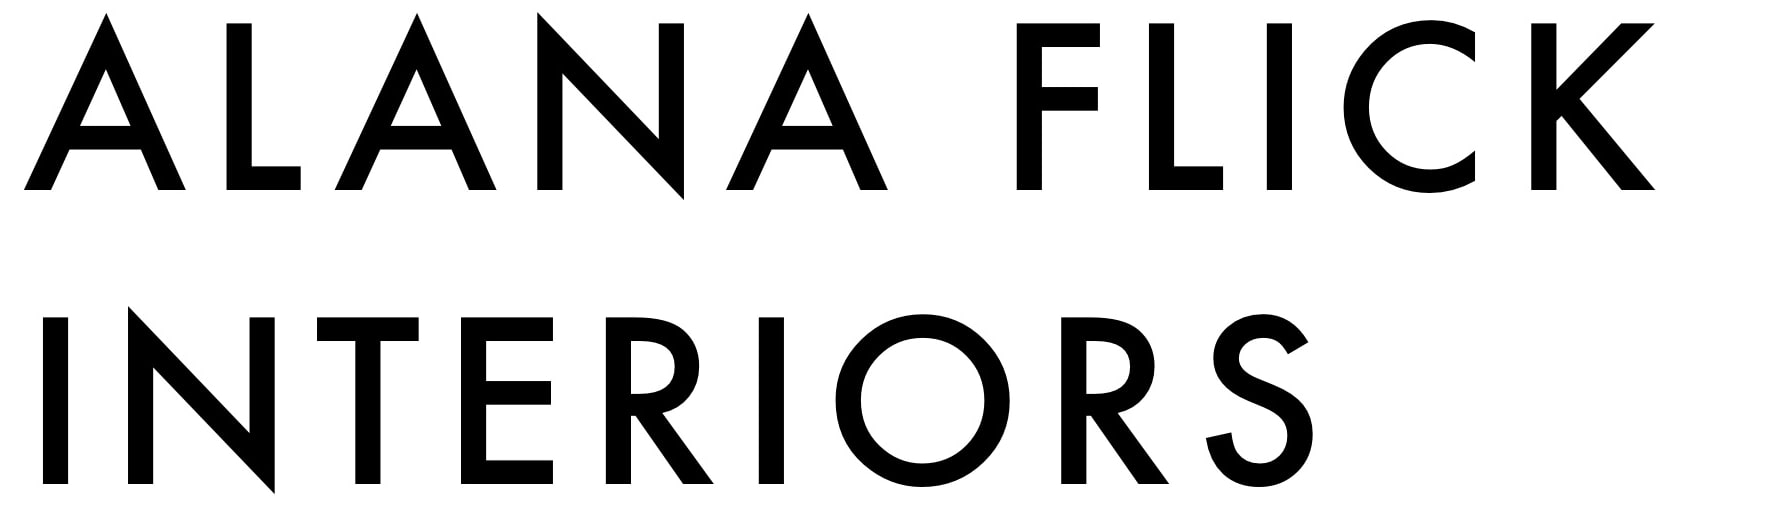 Alana Flick Interiors – Innenarchitektur Hamburg